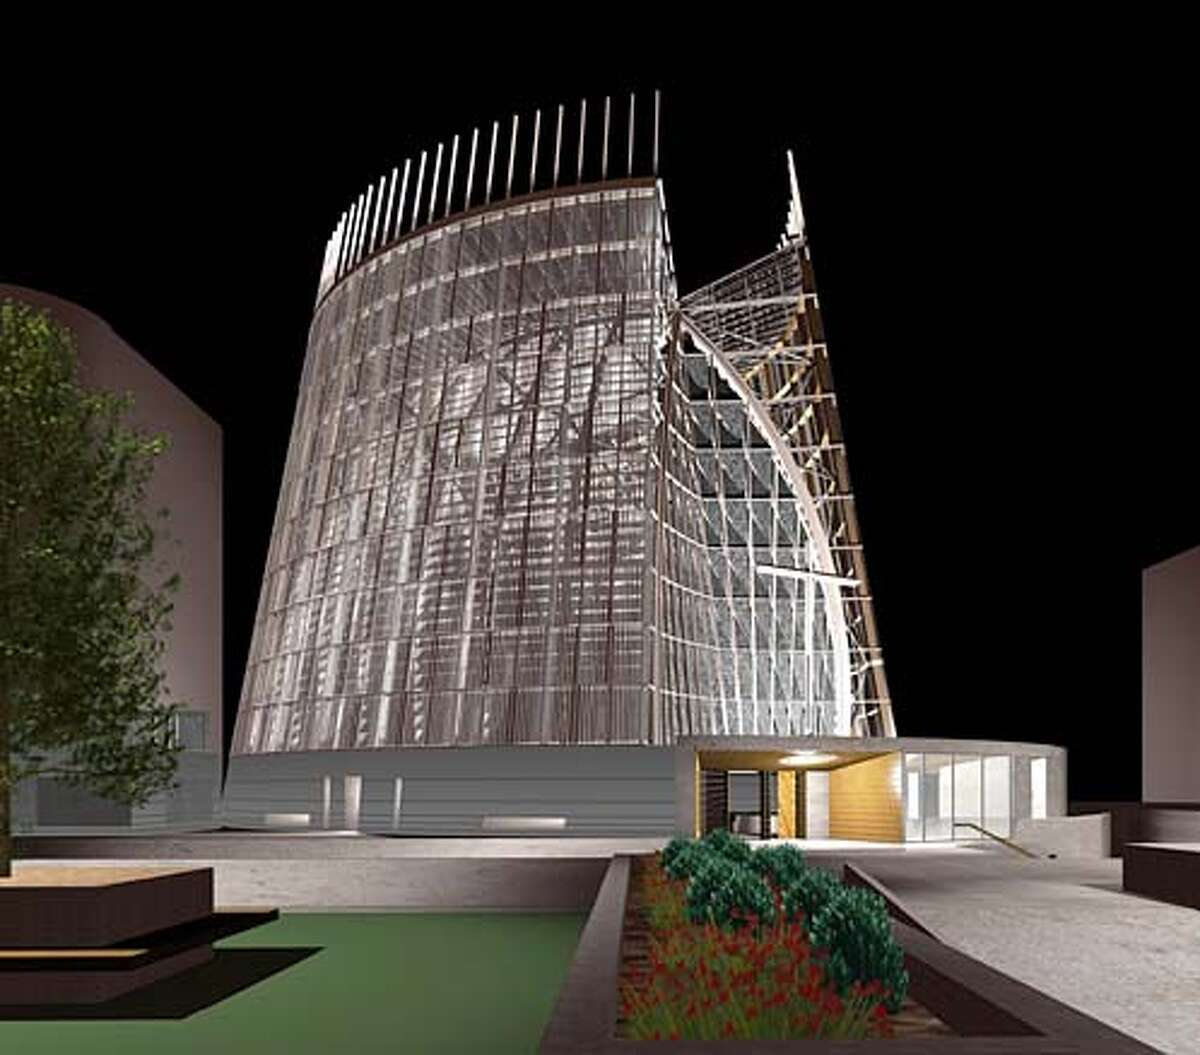 cathedraldesign22.jpg Model of design for Oakland's Christ the Light Cathedral, scheduled to open in January 2008.